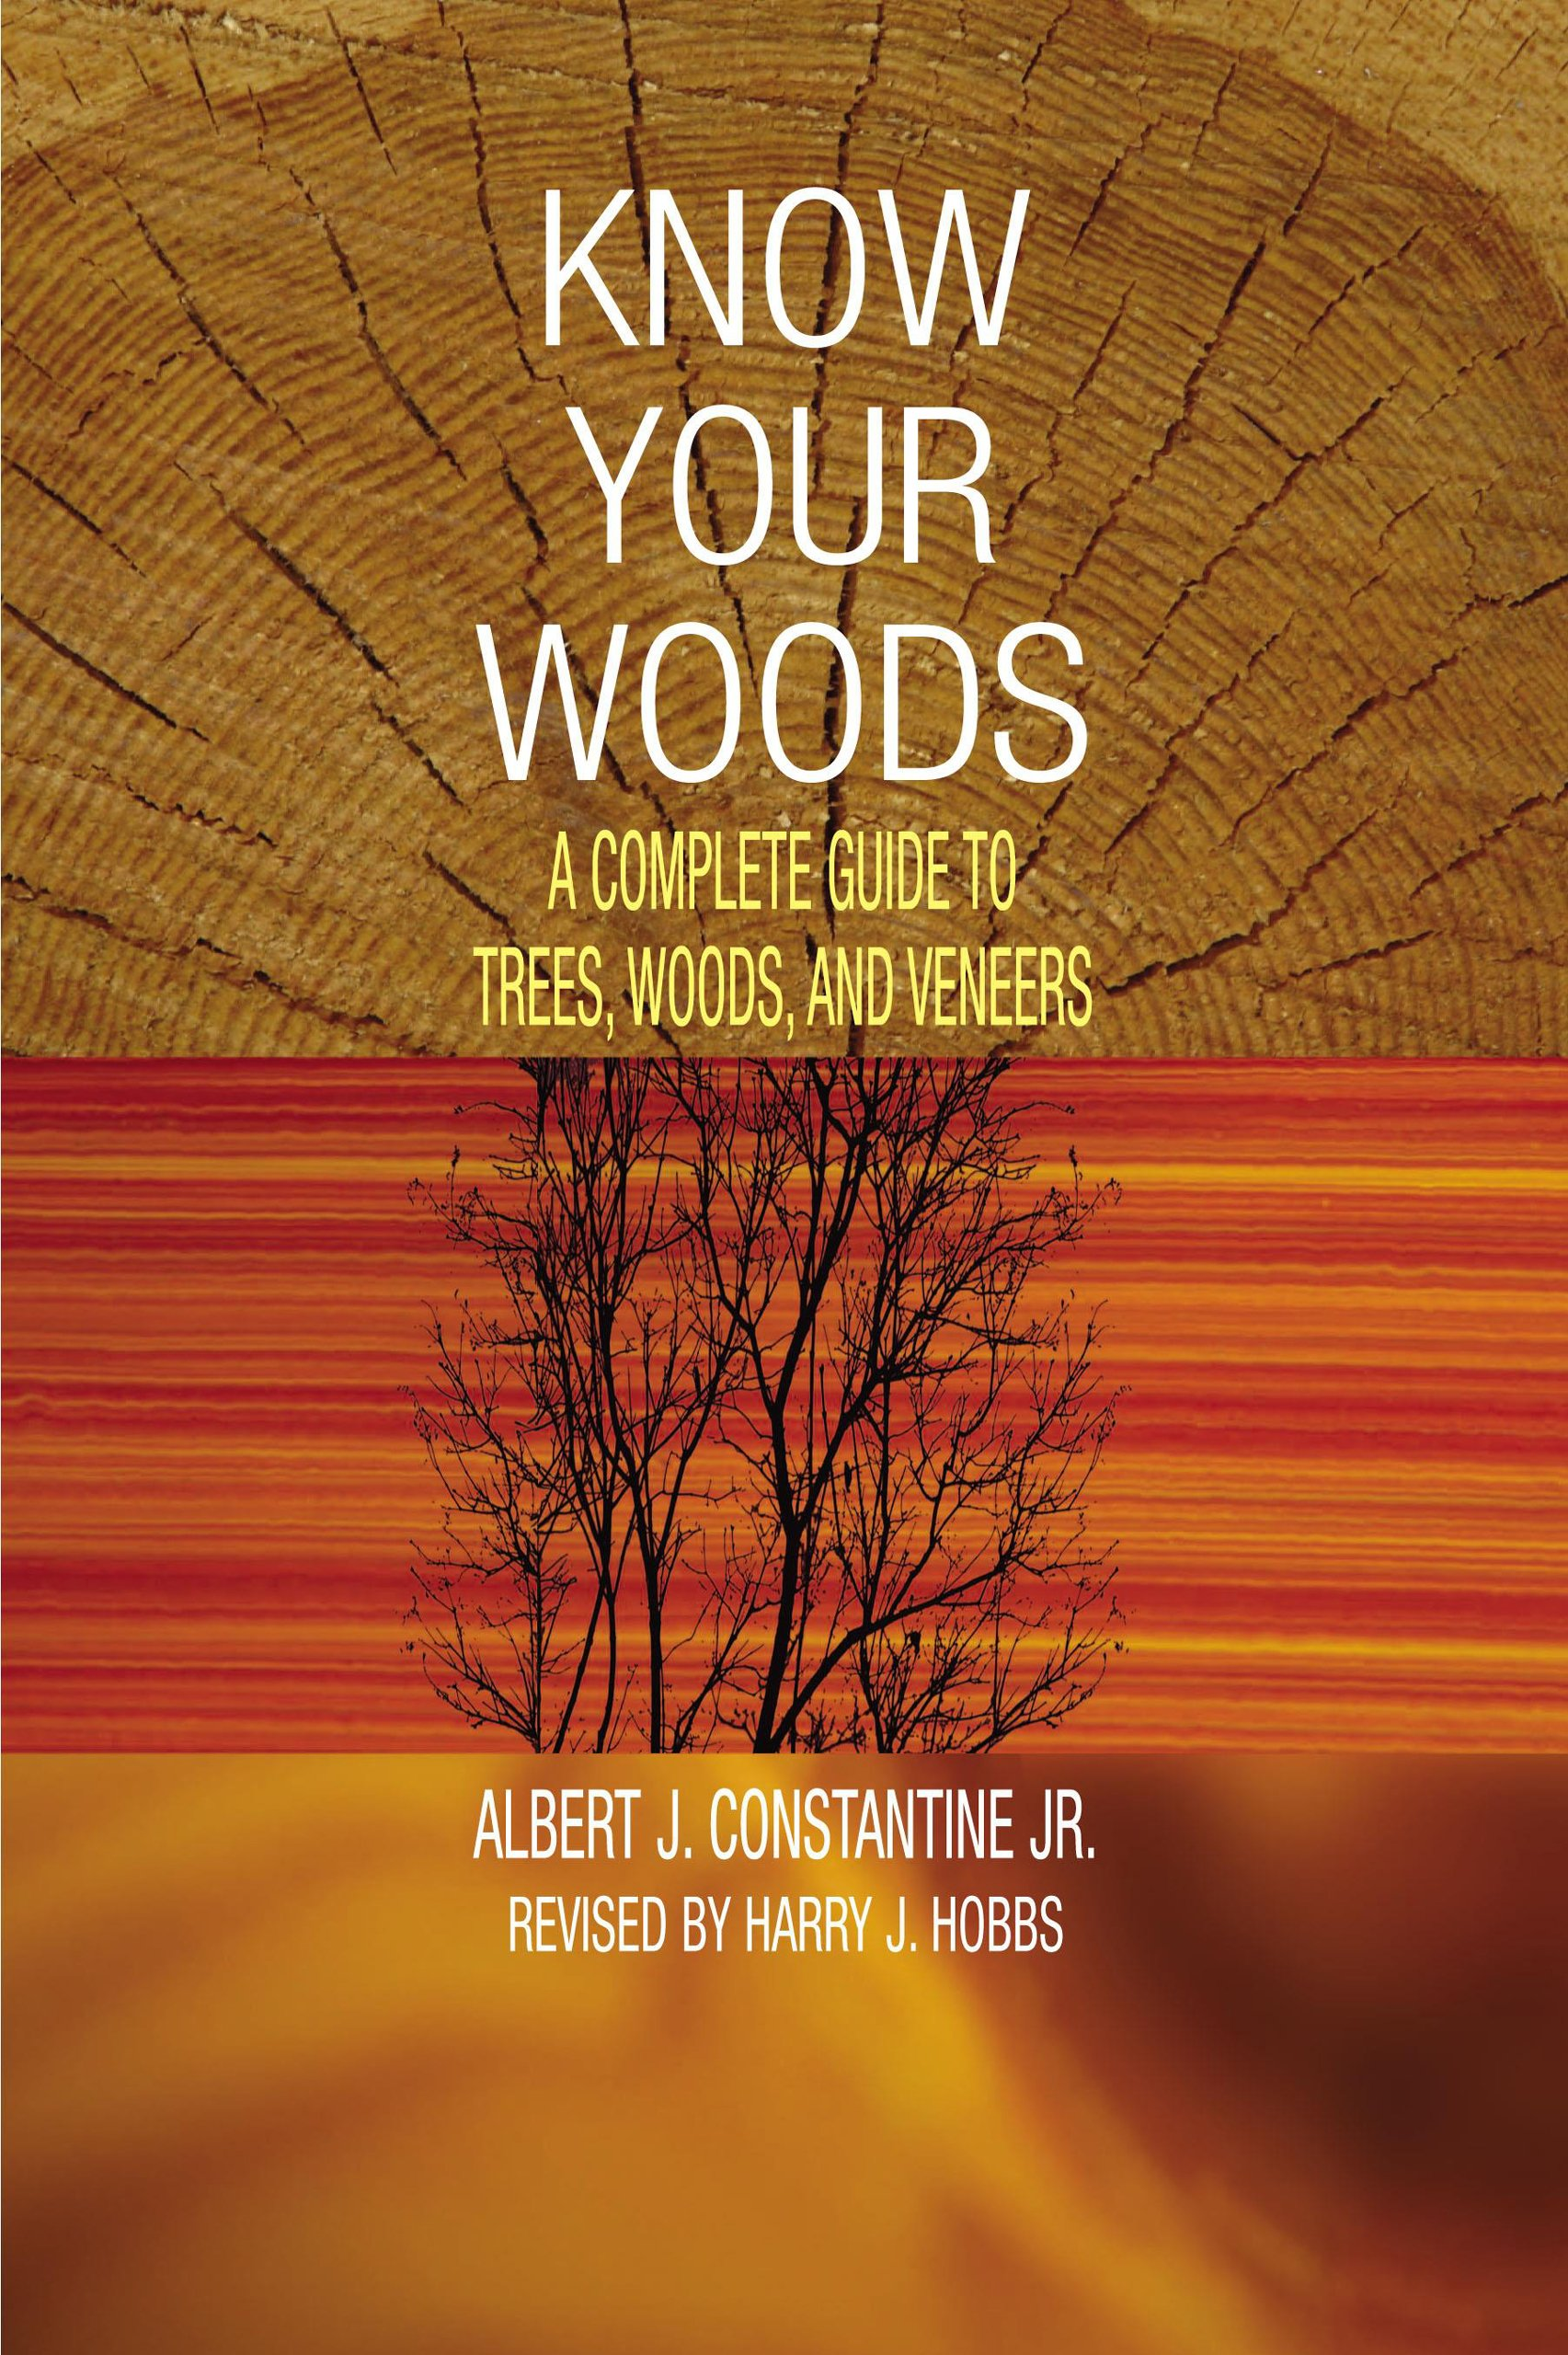 Know Your Woods: A Complete Guide to Trees, Woods, and Veneers: Albert J.  Constantine Jr., Harry J. Hobbs: 9781592286829: Amazon.com: Books